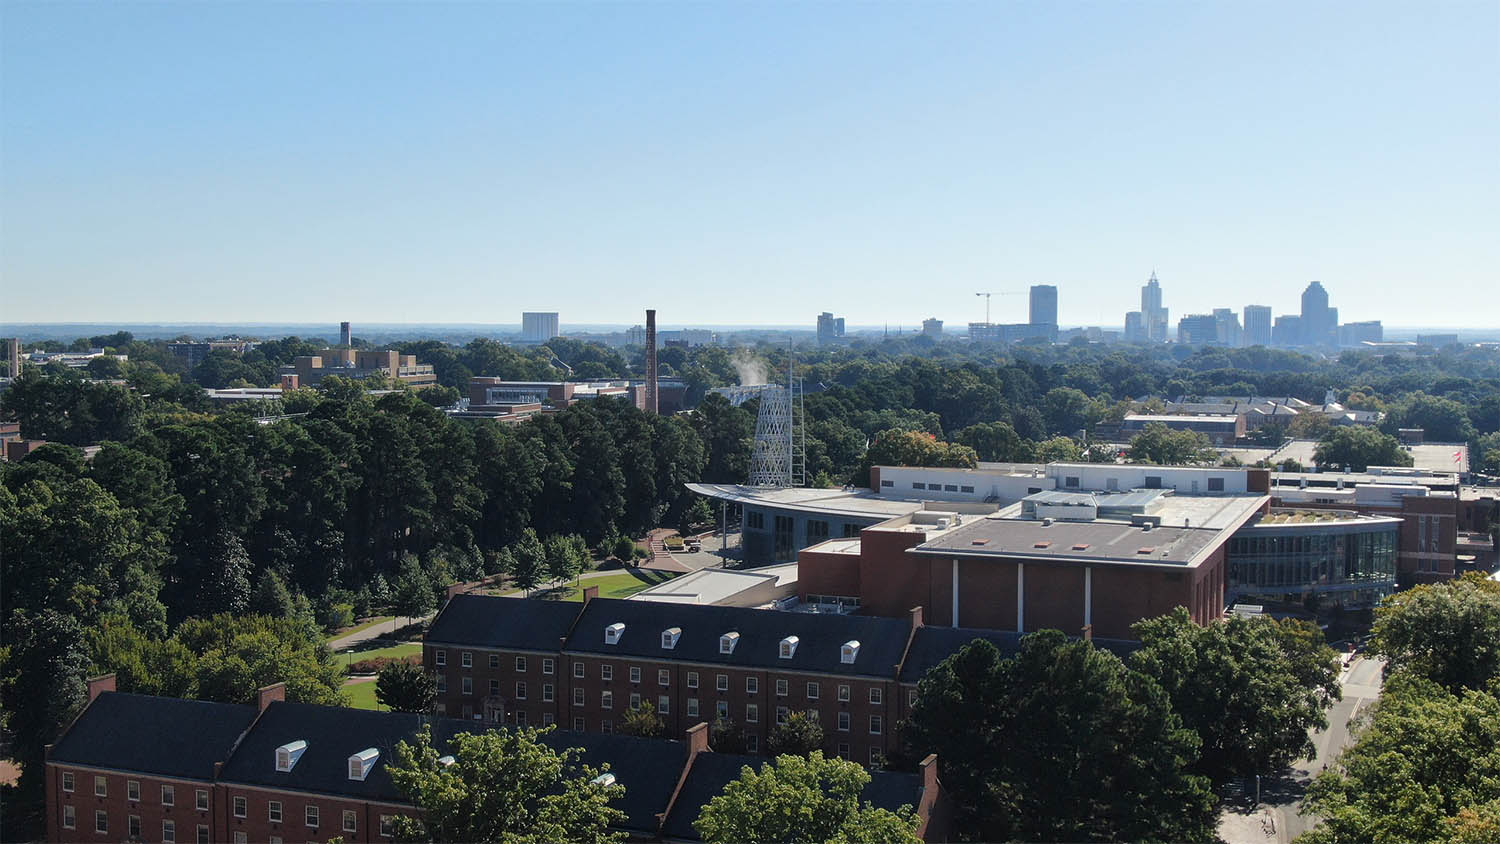 An aerial view of brick buildings and Talley Student Union, with downtown Raleigh in the background